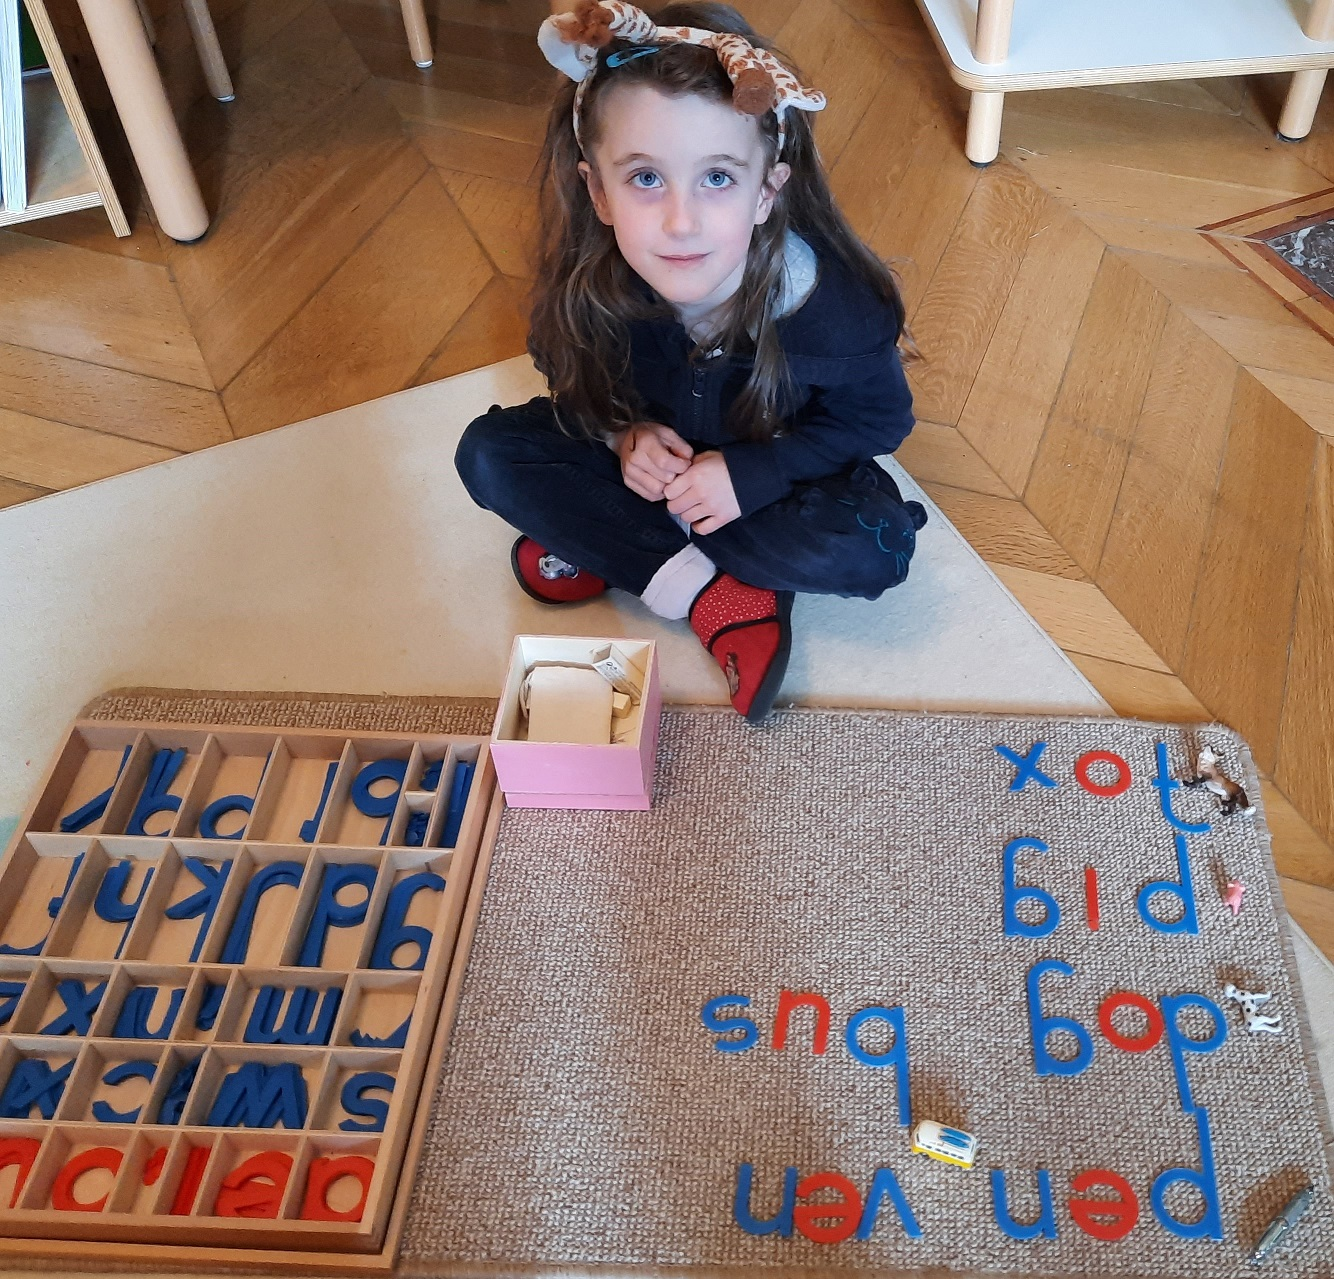 A child learning to spell with letter forms on the floor.